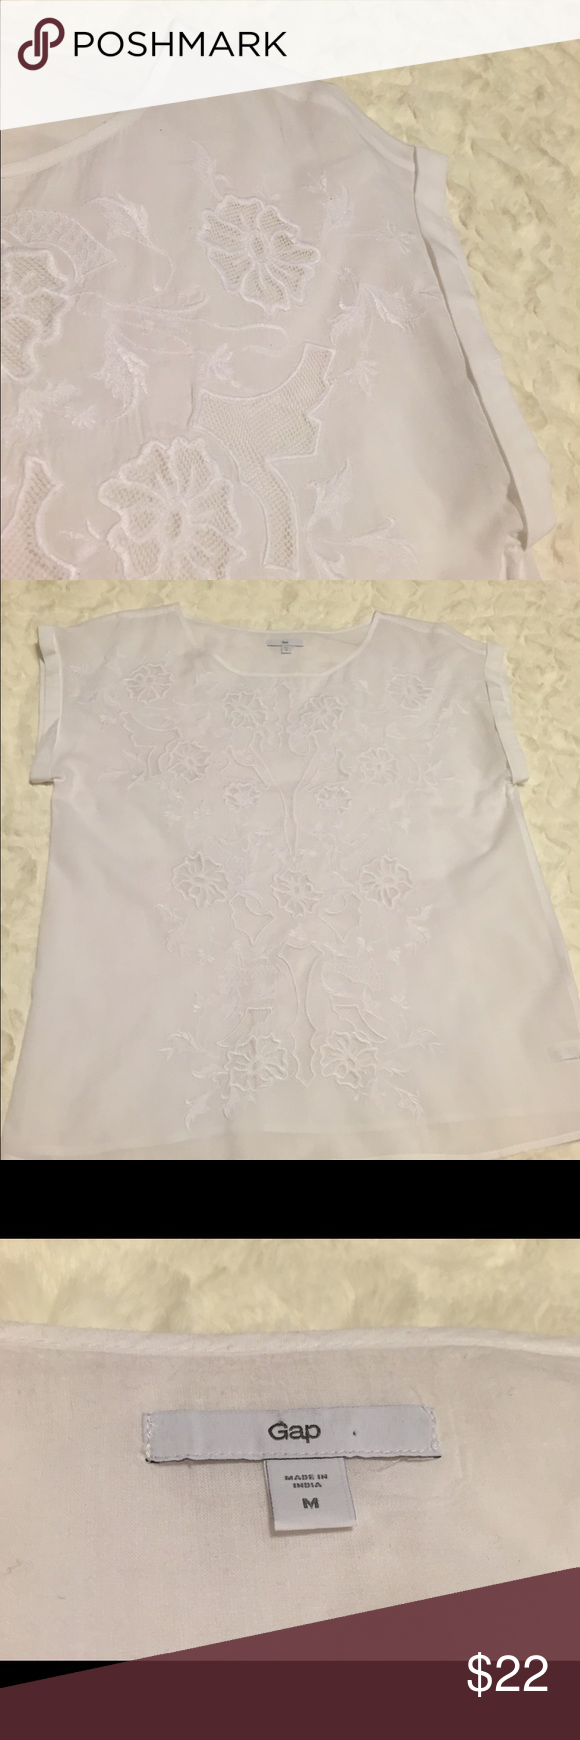 Gap sheer white blouse Such a pretty blouse, but I was sent the wrong size ☹️. Hopefully someone else loves it!!  White, sheer top with beautiful details on the front.  Size Medium, by Gap. GAP Tops Blouses